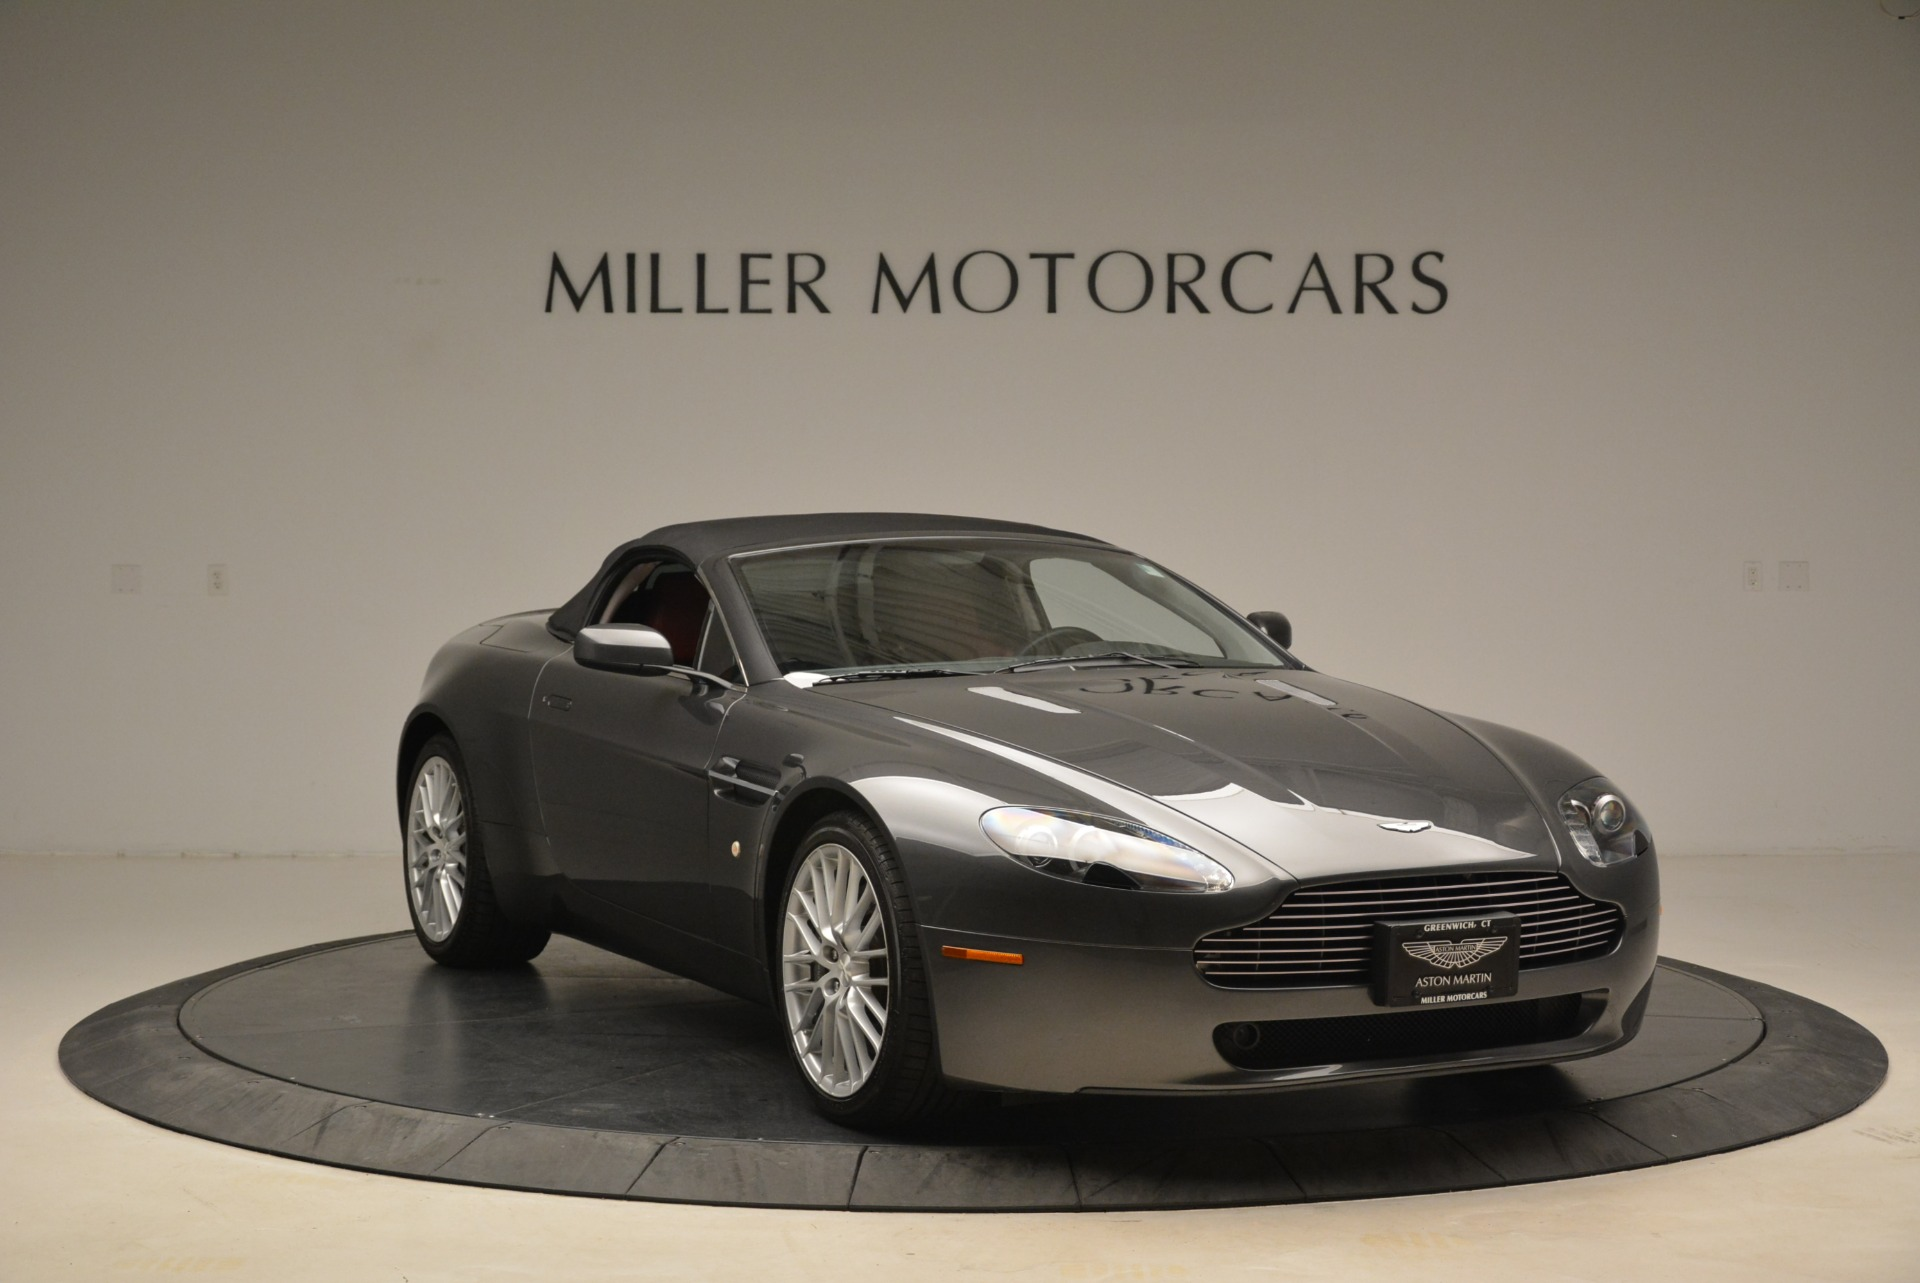 Used 2009 Aston Martin V8 Vantage Roadster For Sale In Westport, CT 2123_p23